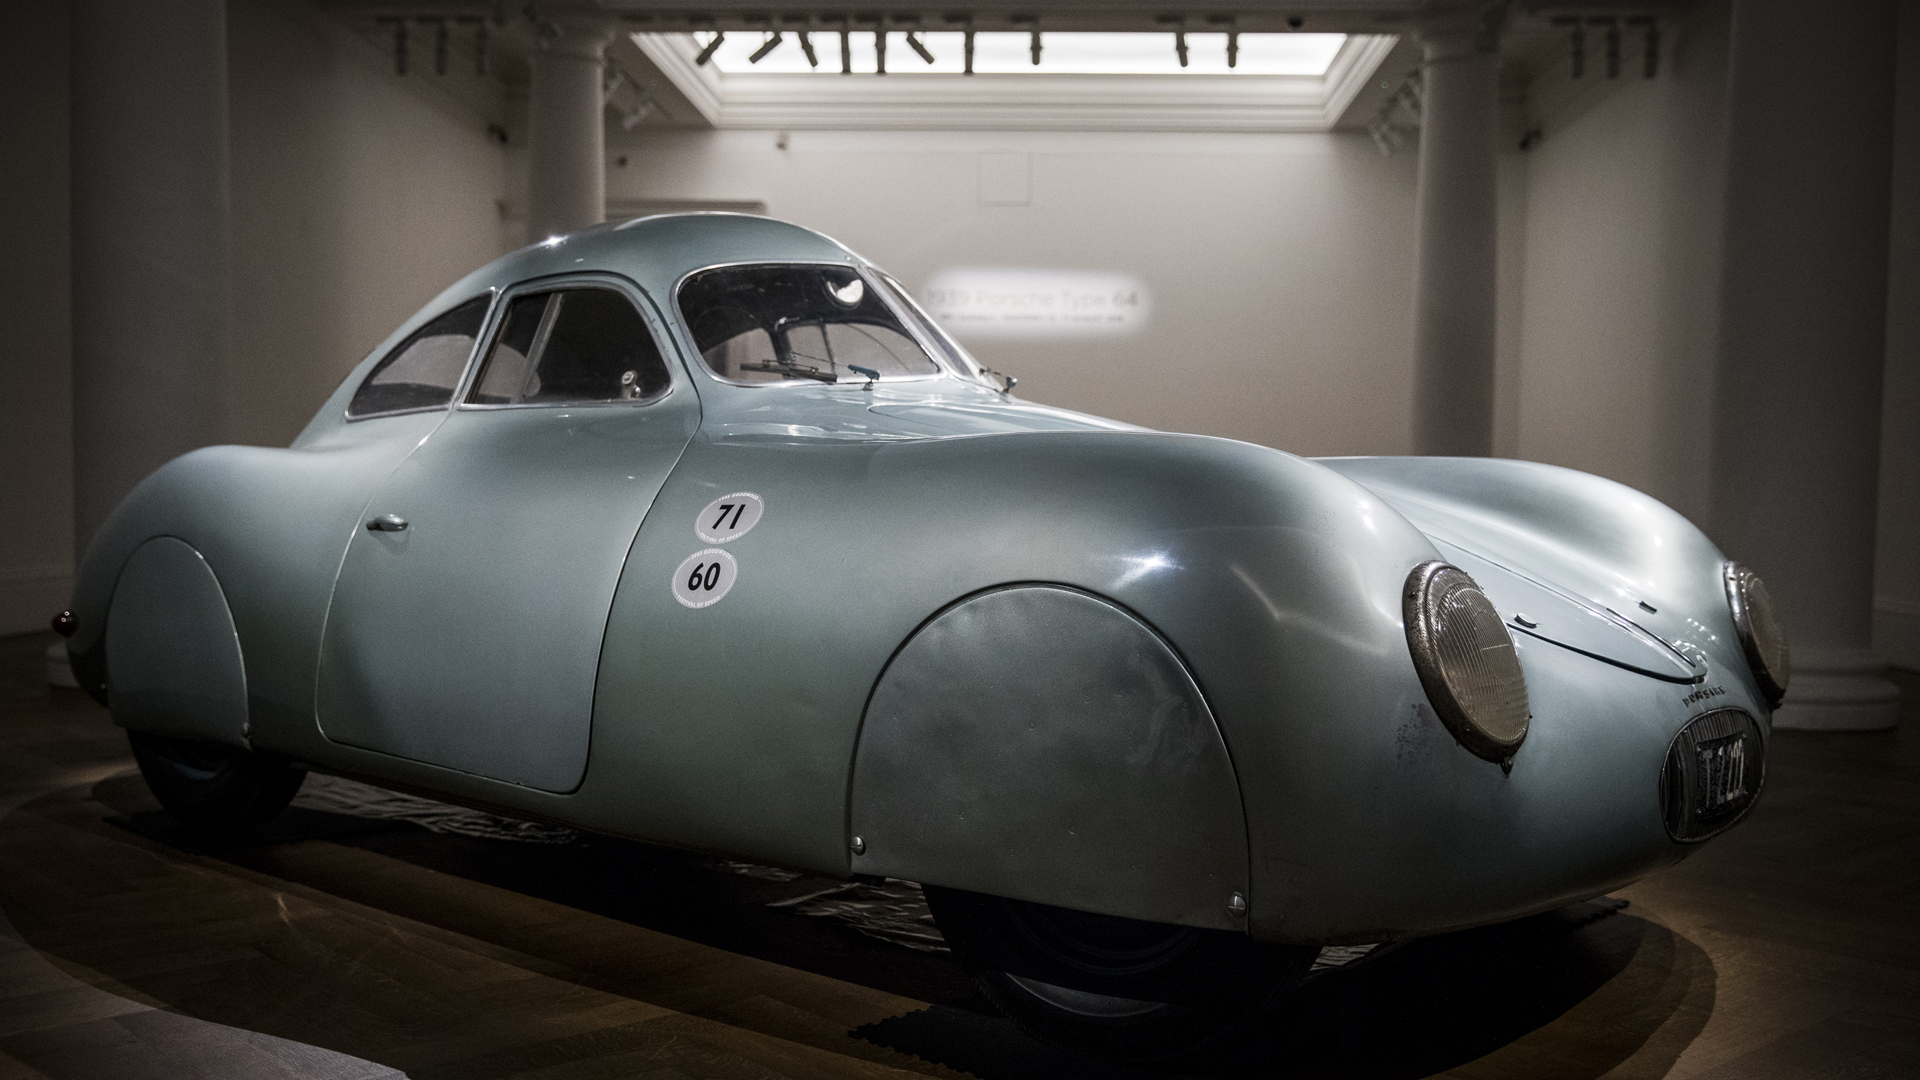 The oldest car to wear the Porsche badge goes on view at Sotheby's on May 21, 2019 in London, England. The only surviving 1939 Porsche Type 64 Berlin-Rome, No. 3, this rare piece of motoring history was the personal car of Ferdinand and Ferry Porsche, predating the first production Porsche, the 356. (Credit: Tristan Fewings/Getty Images for Sotheby's)